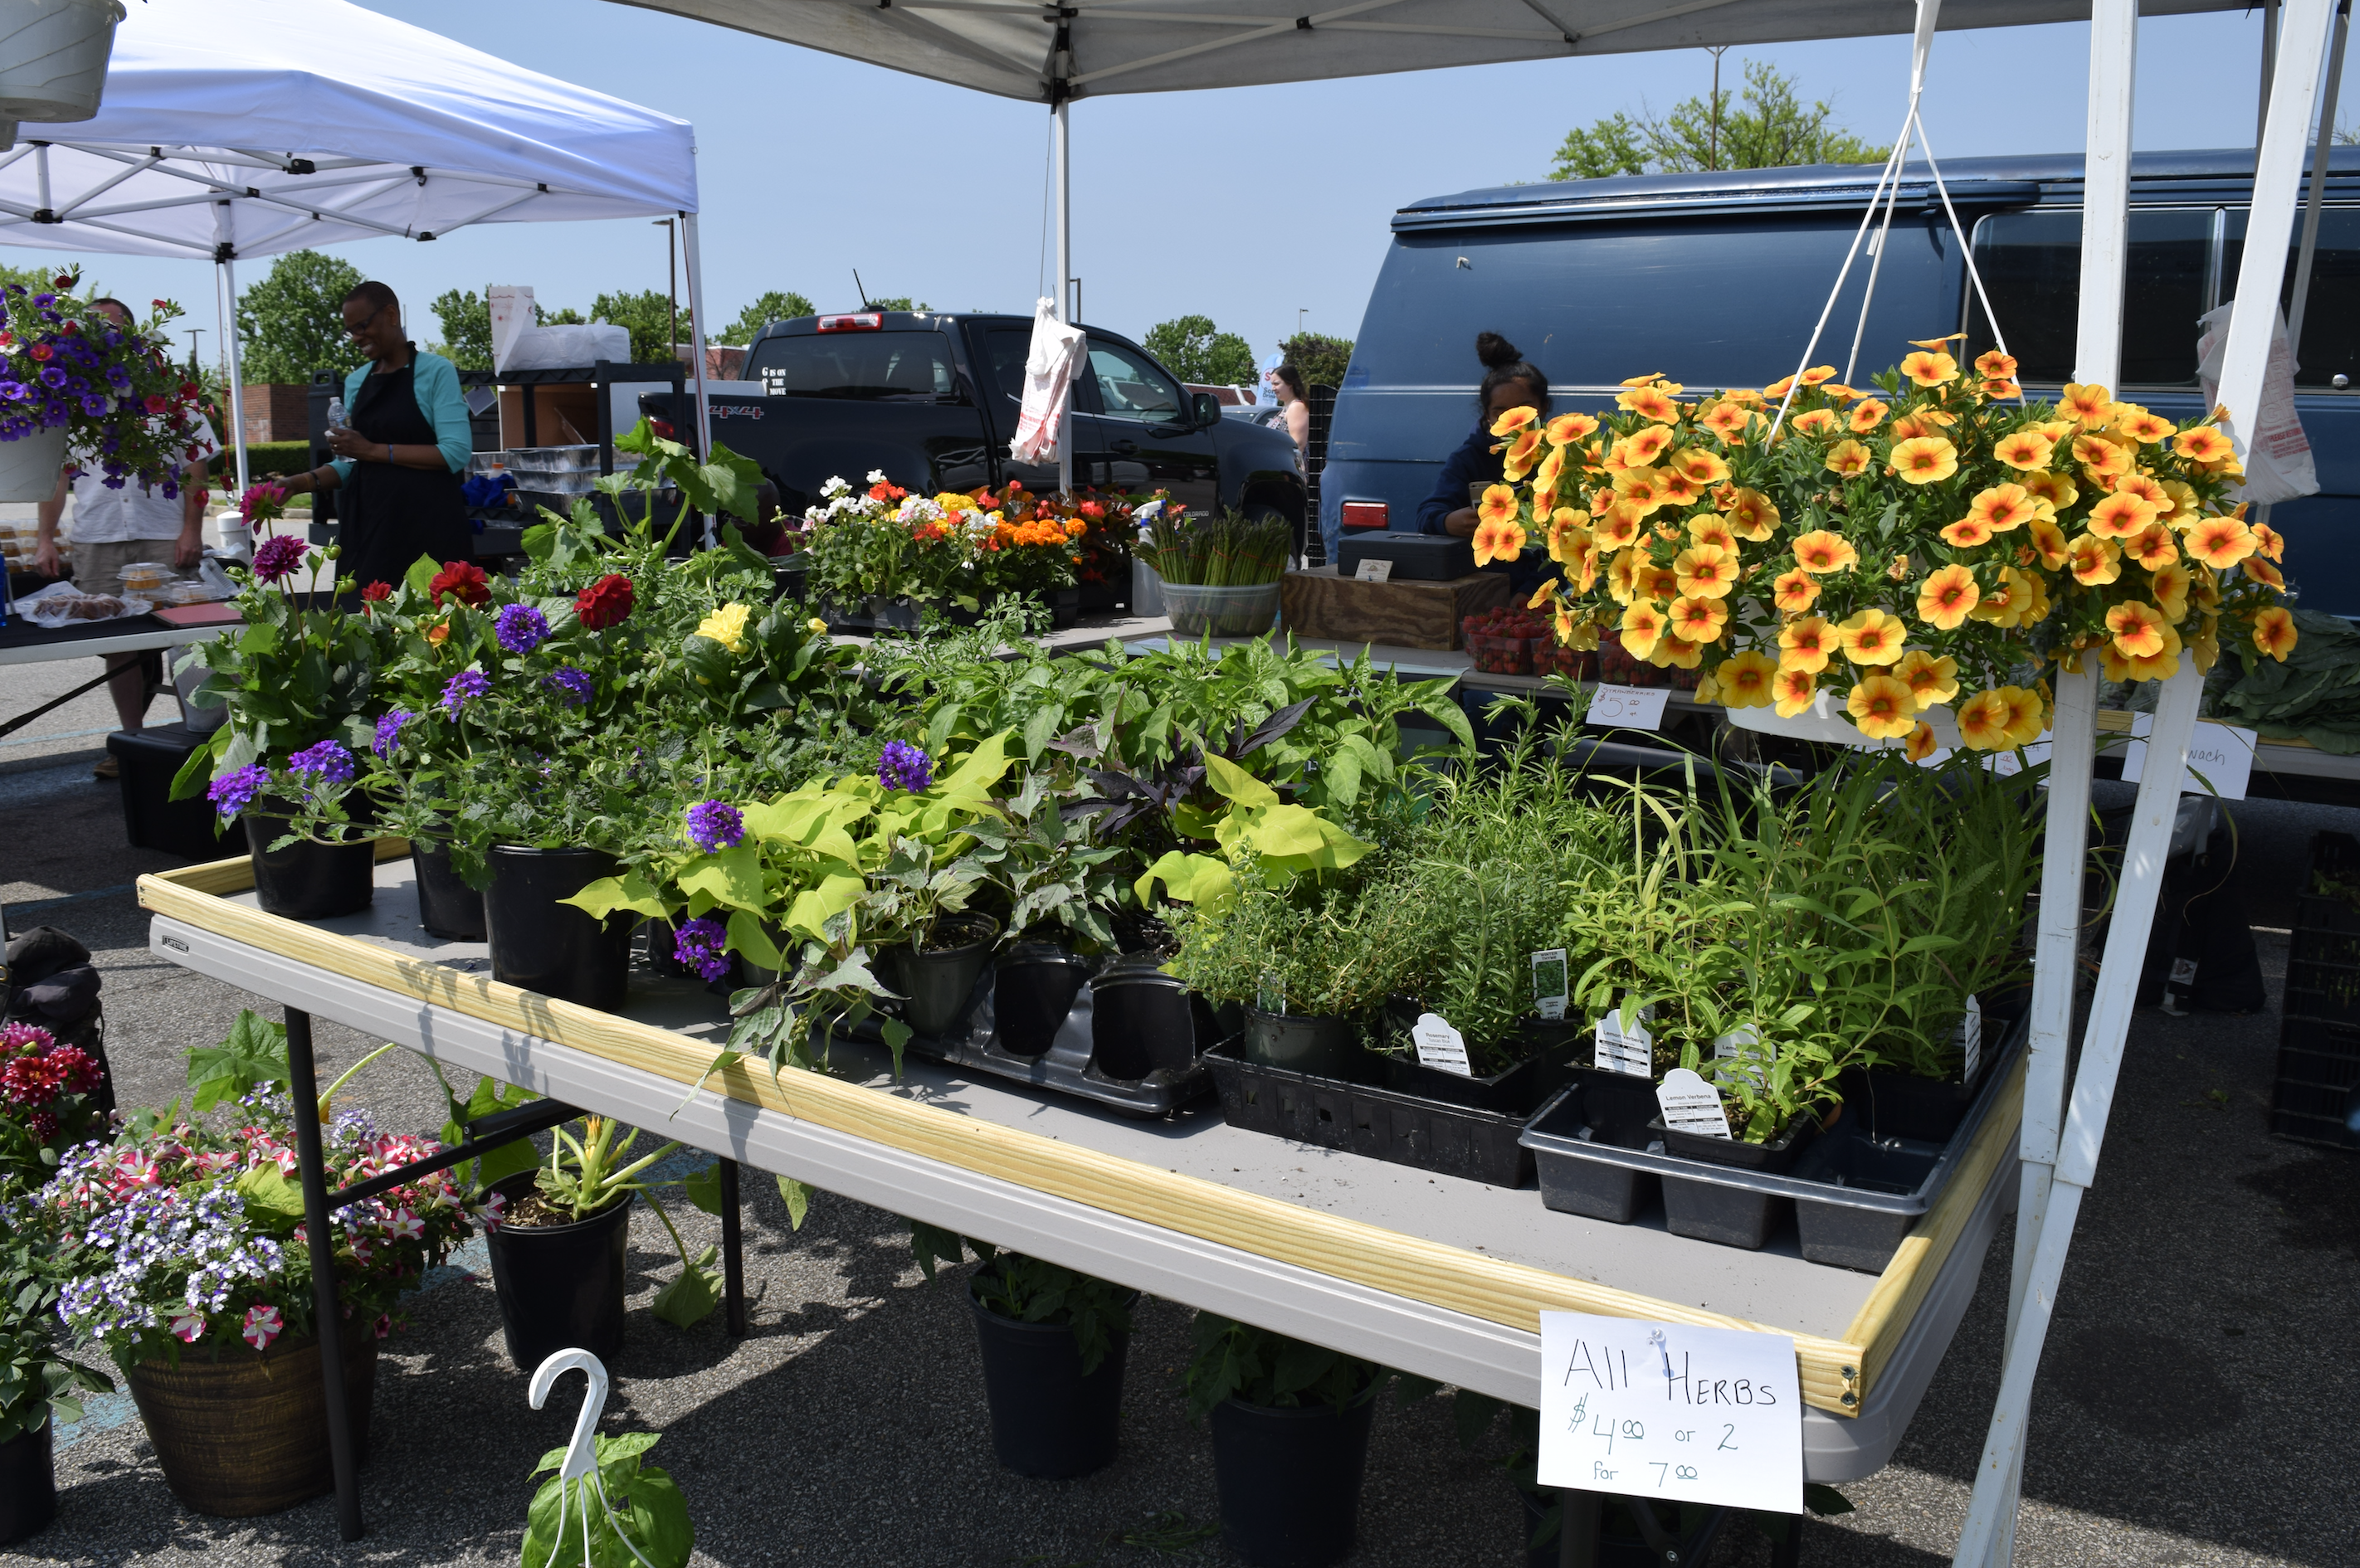 """Find fresh plants and flowers and herbs at """"The Market at Potomac Mills"""" in Woodbridge, Virginia- a farmers market open from late April to late October, 2017."""